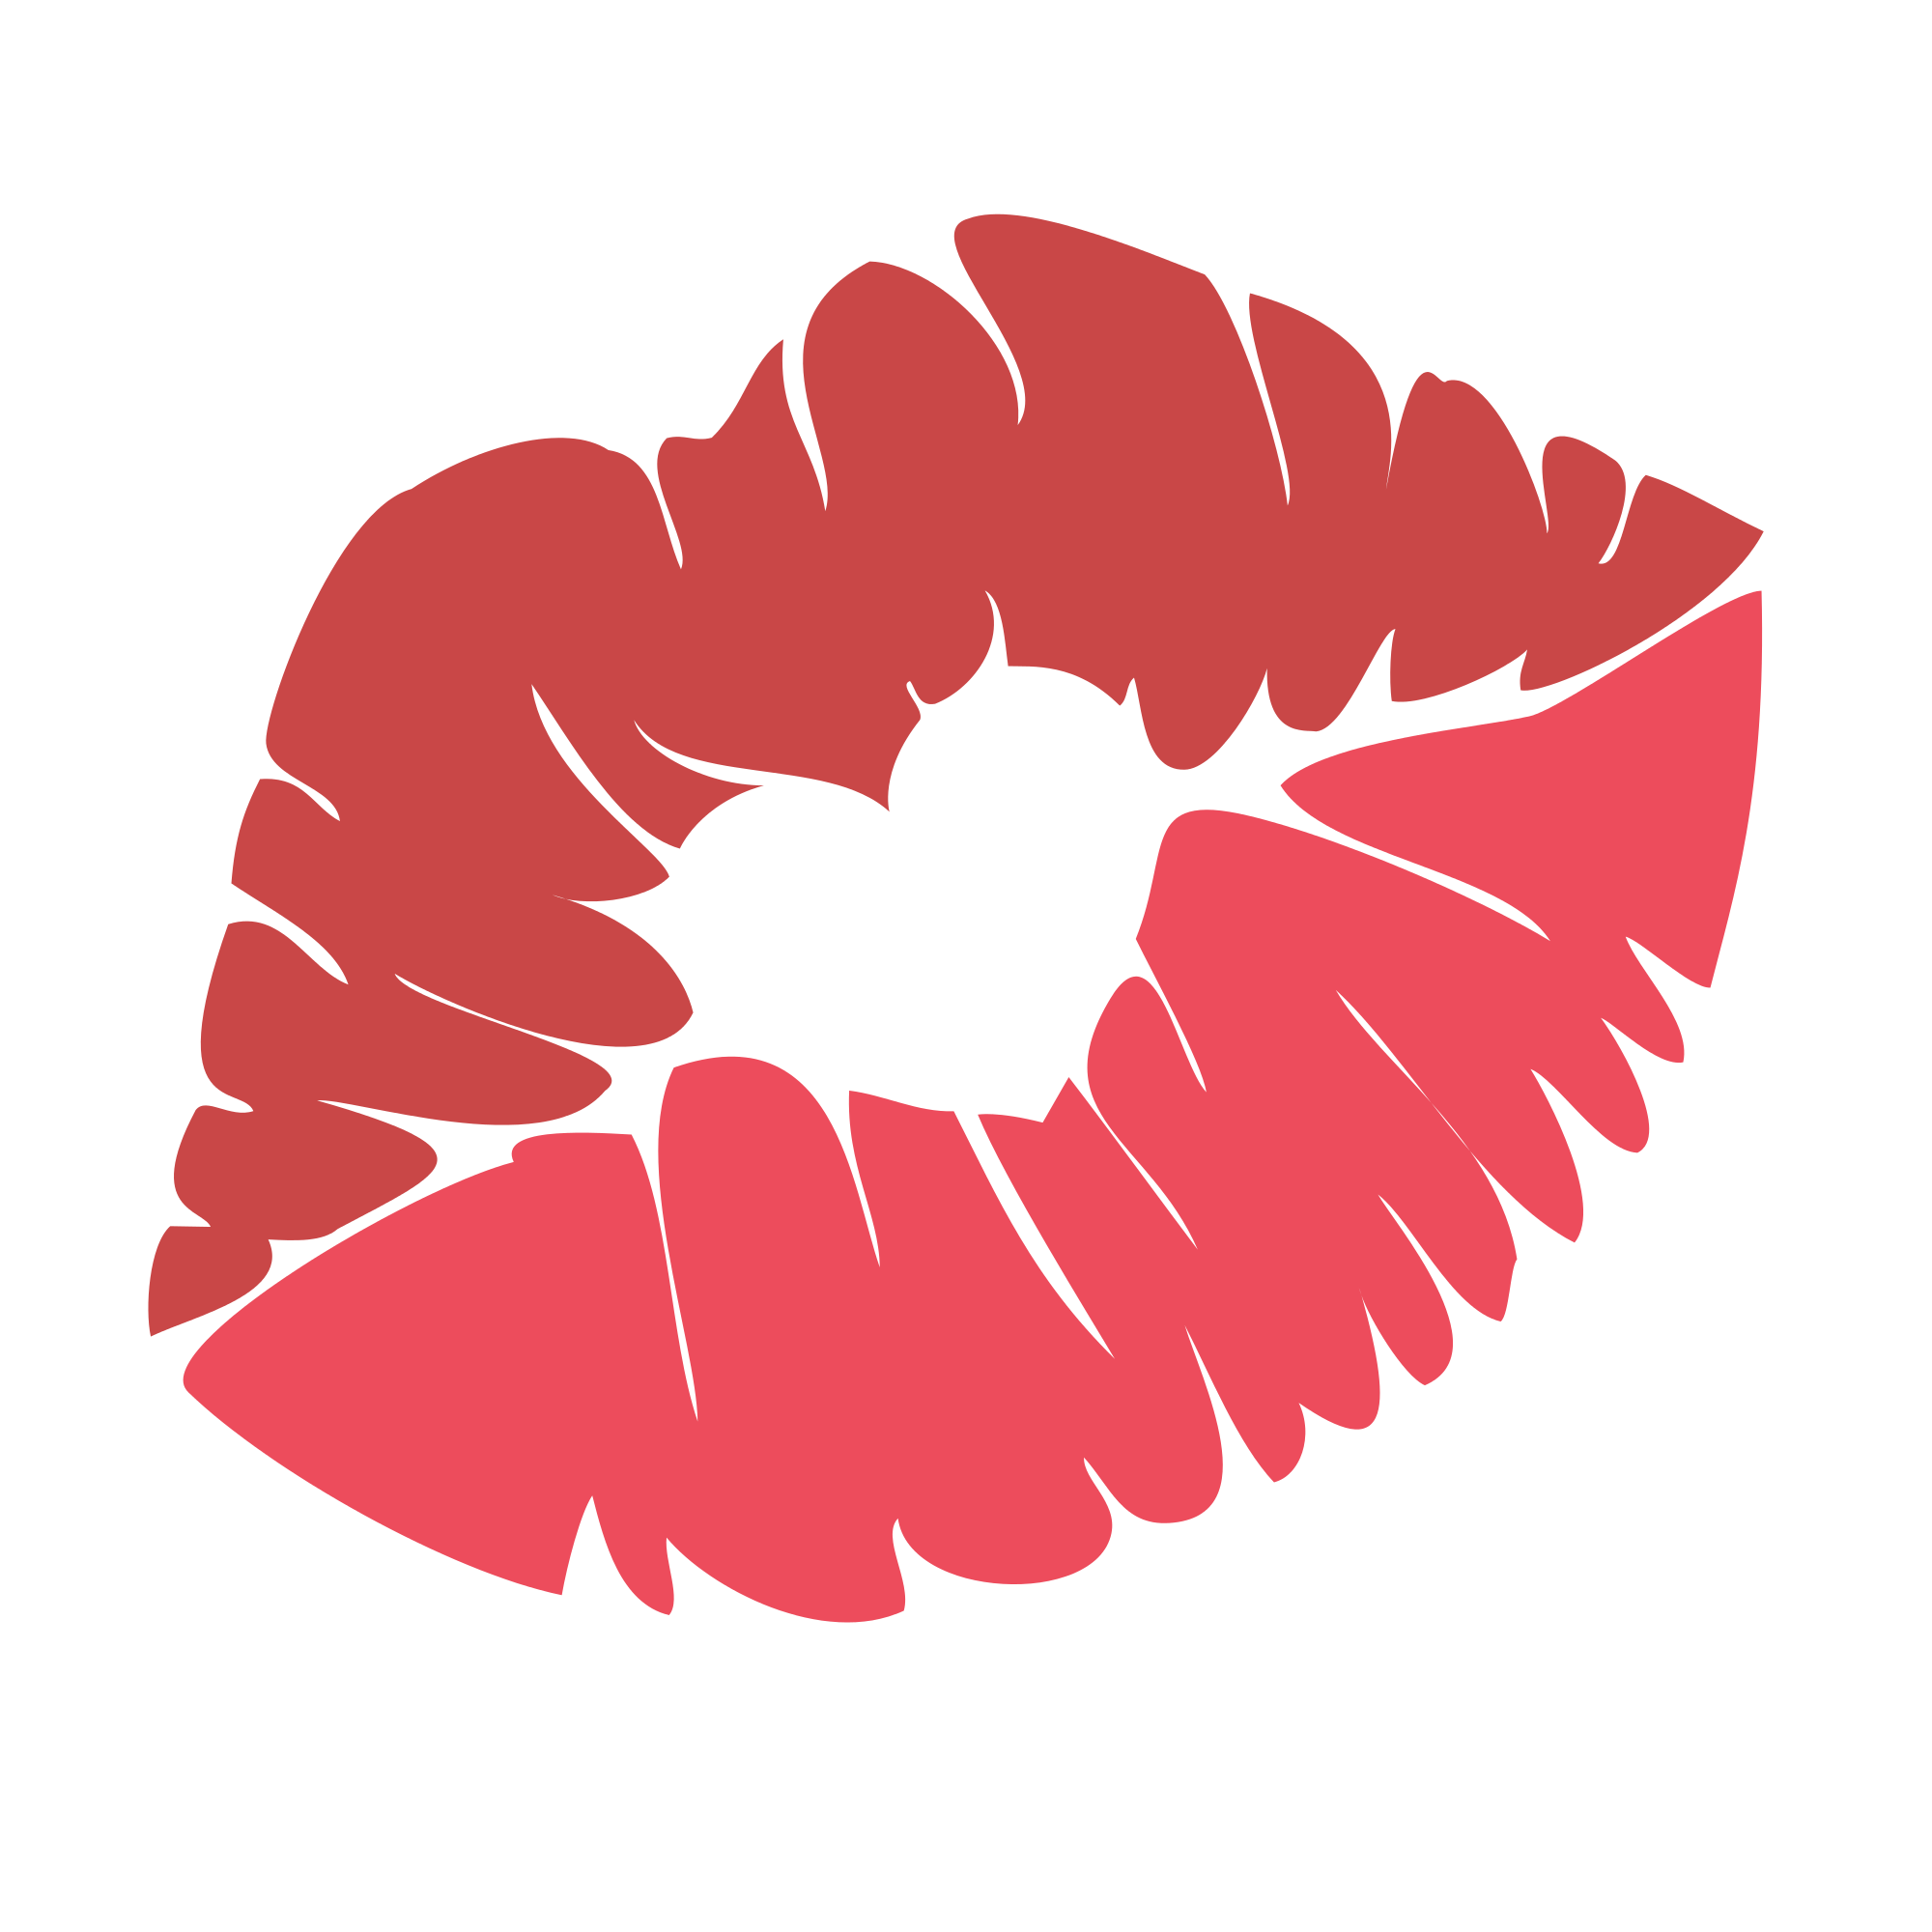 Kissing svg #16, Download drawings